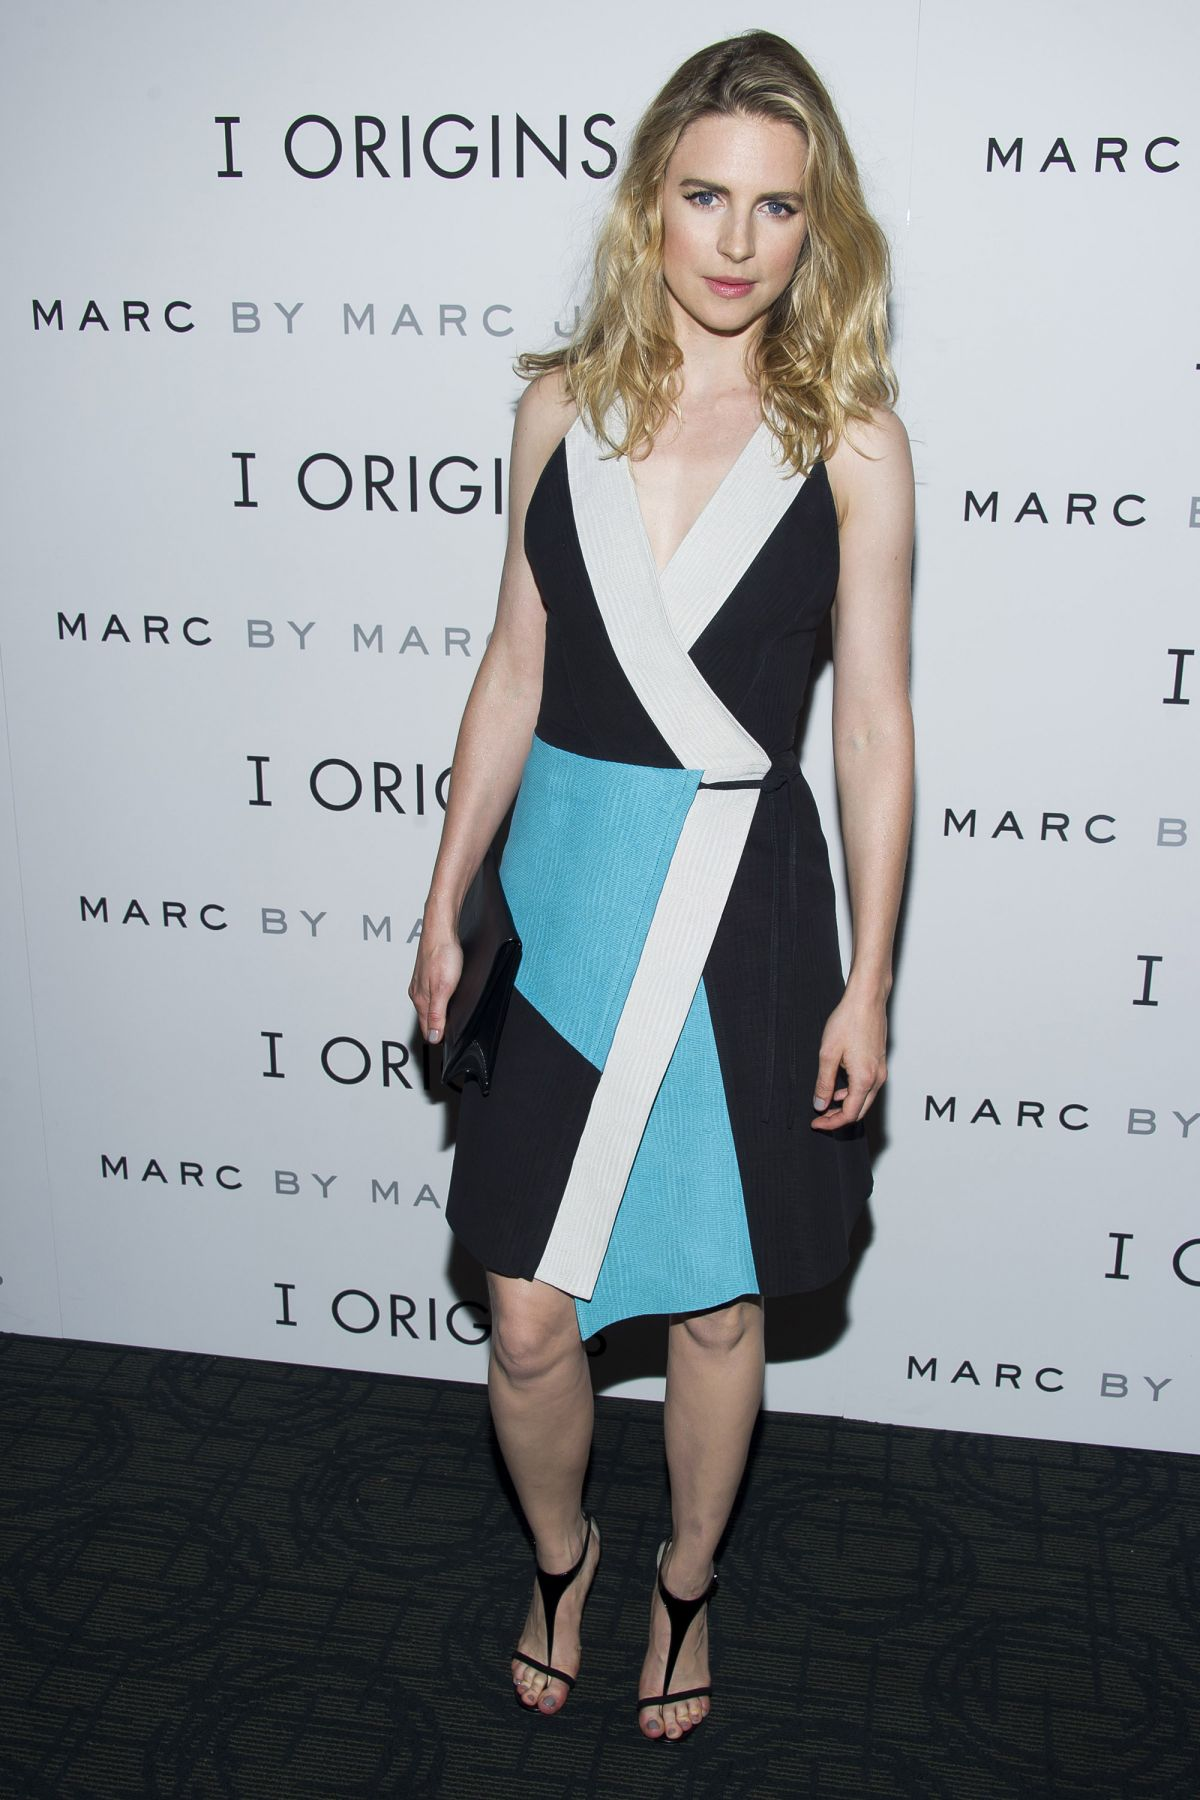 BRIT MARLING at I Origins Premiere in New York